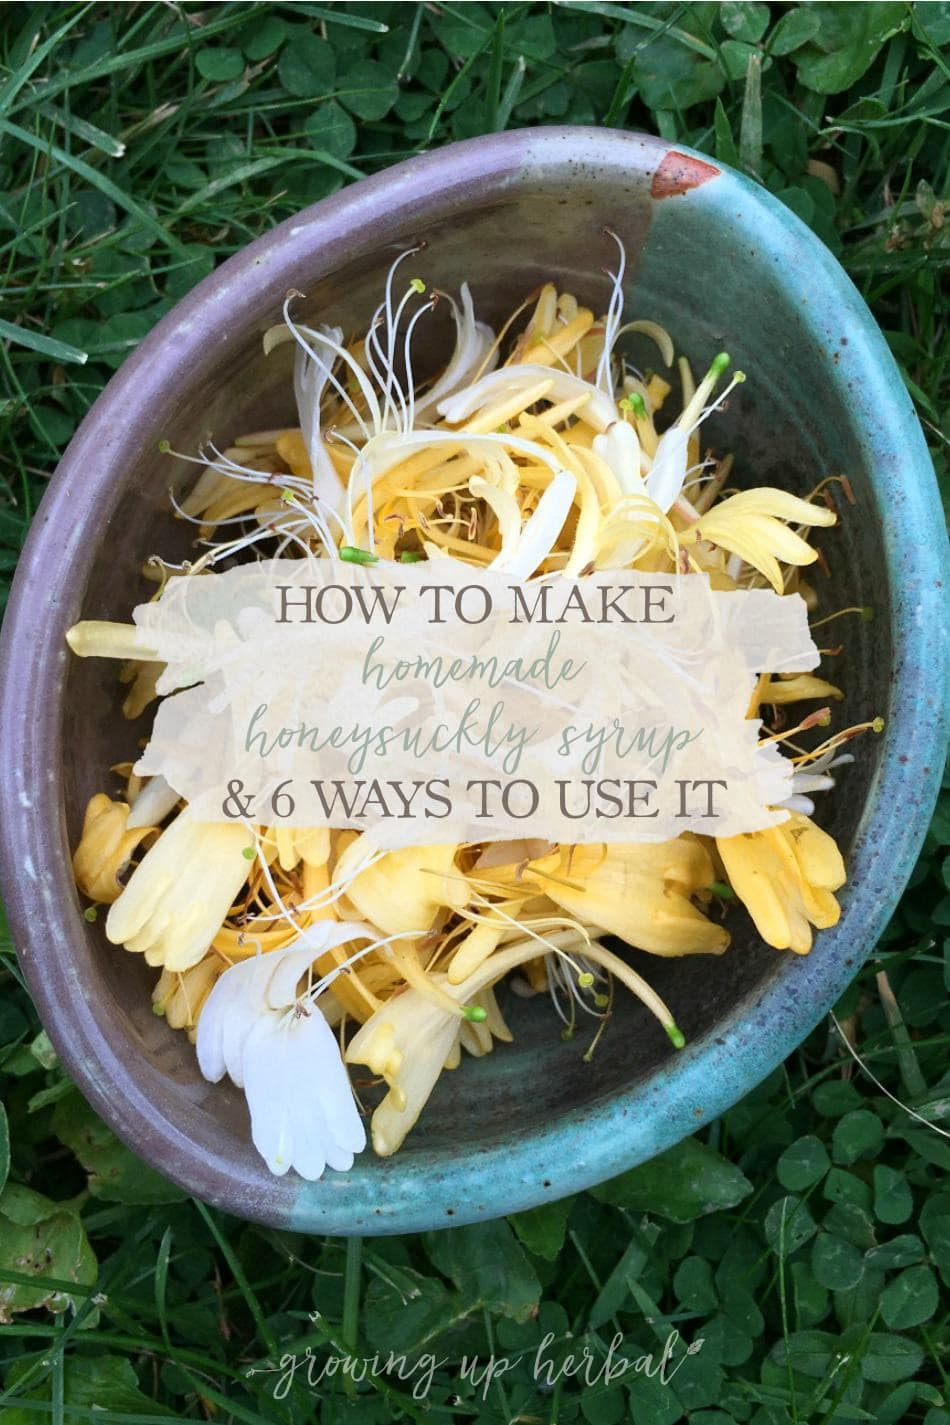 Homemade Honeysuckle Syrup & 6 Ways To Use It | Growing Up Herbal | Learn how to make a simple homemade honeysuckle syrup as well as 6 ways to use it! You've not experienced summer until you've had honeysuckle syrup!